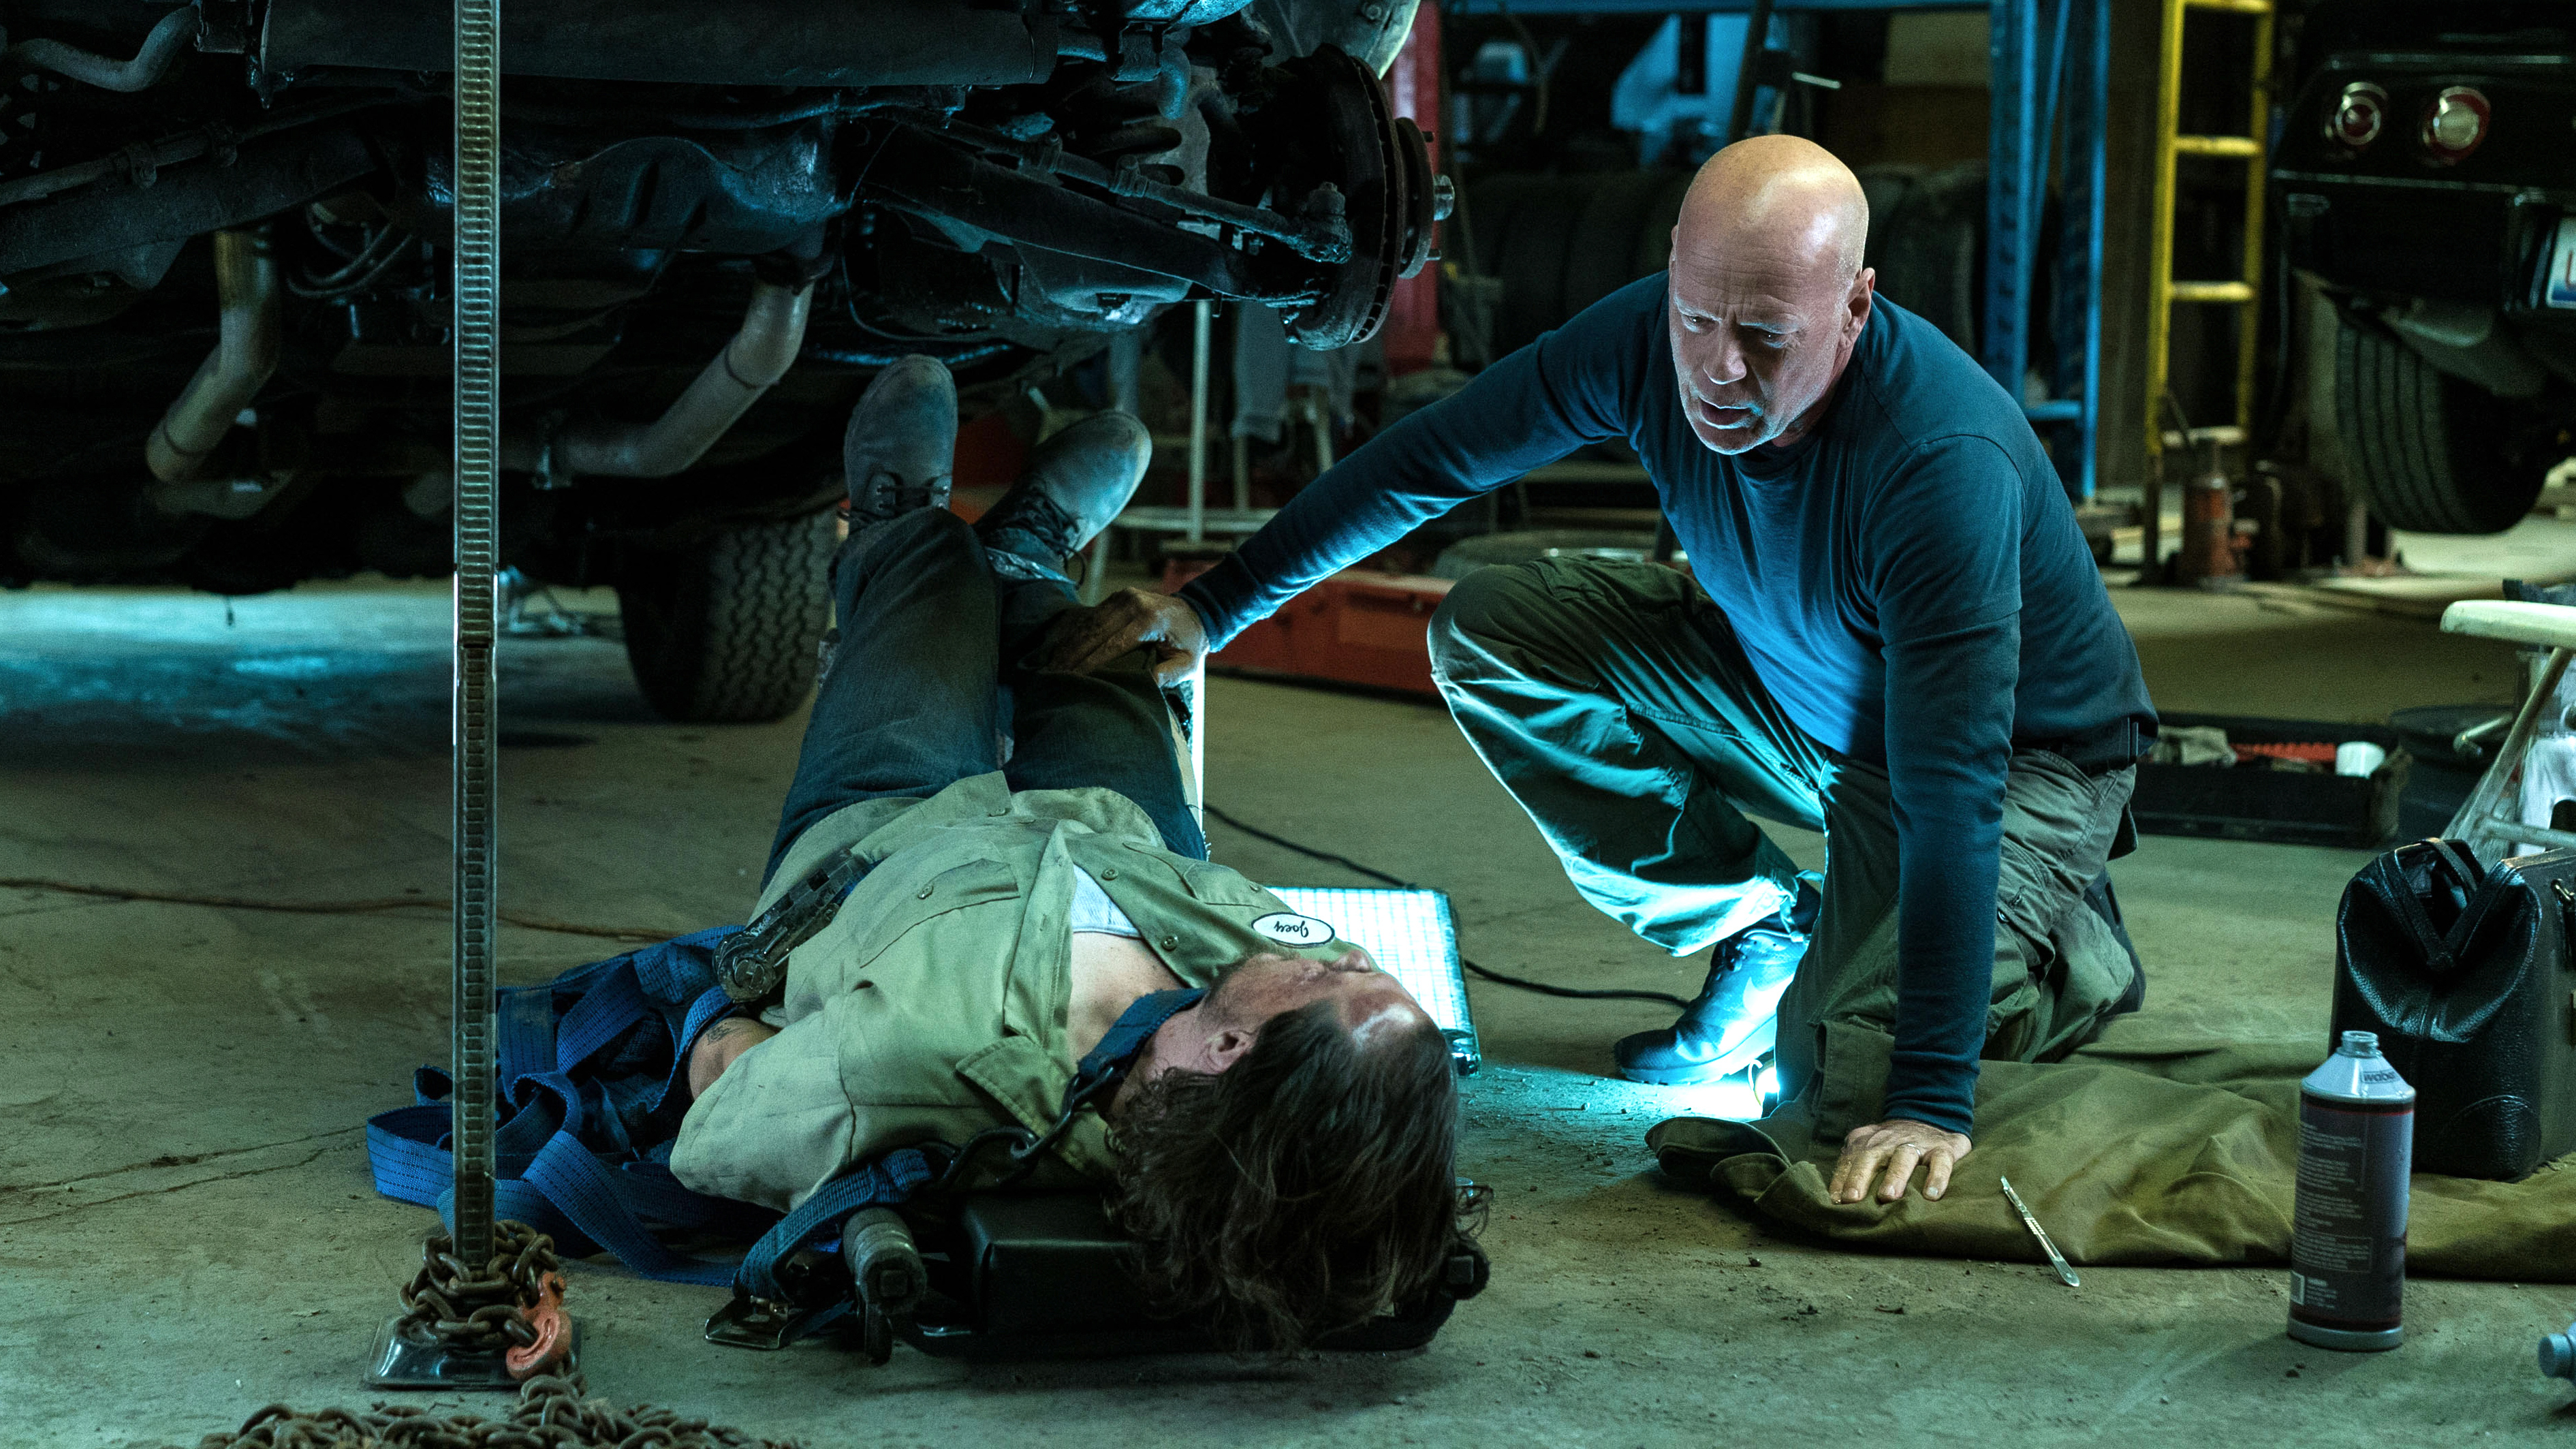 Death Wish' Review: Bruce Willis Dishes Out Torture-Porn Revenge